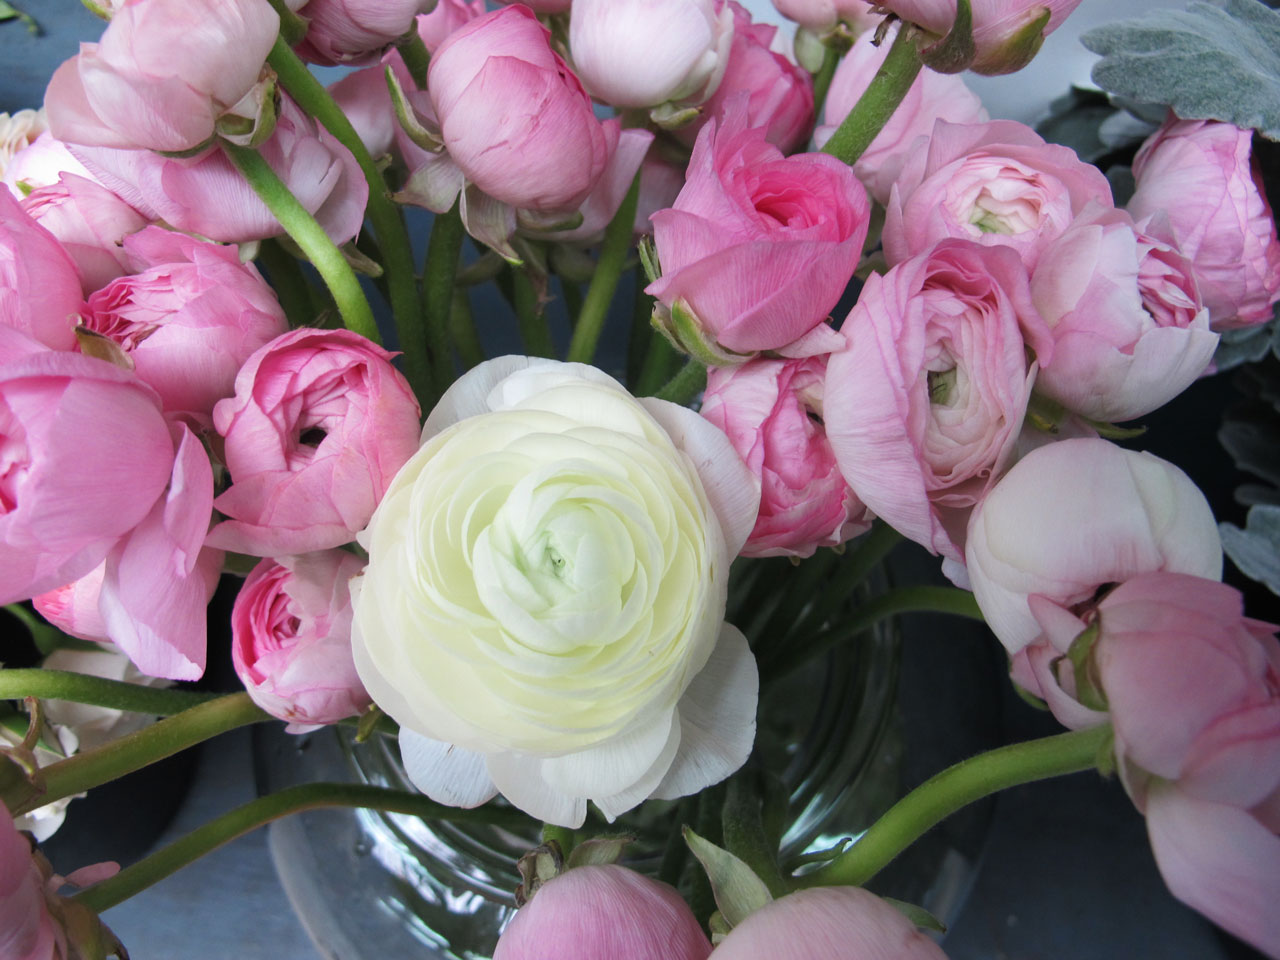 Ranunculus flowers in the HMR Designs studio